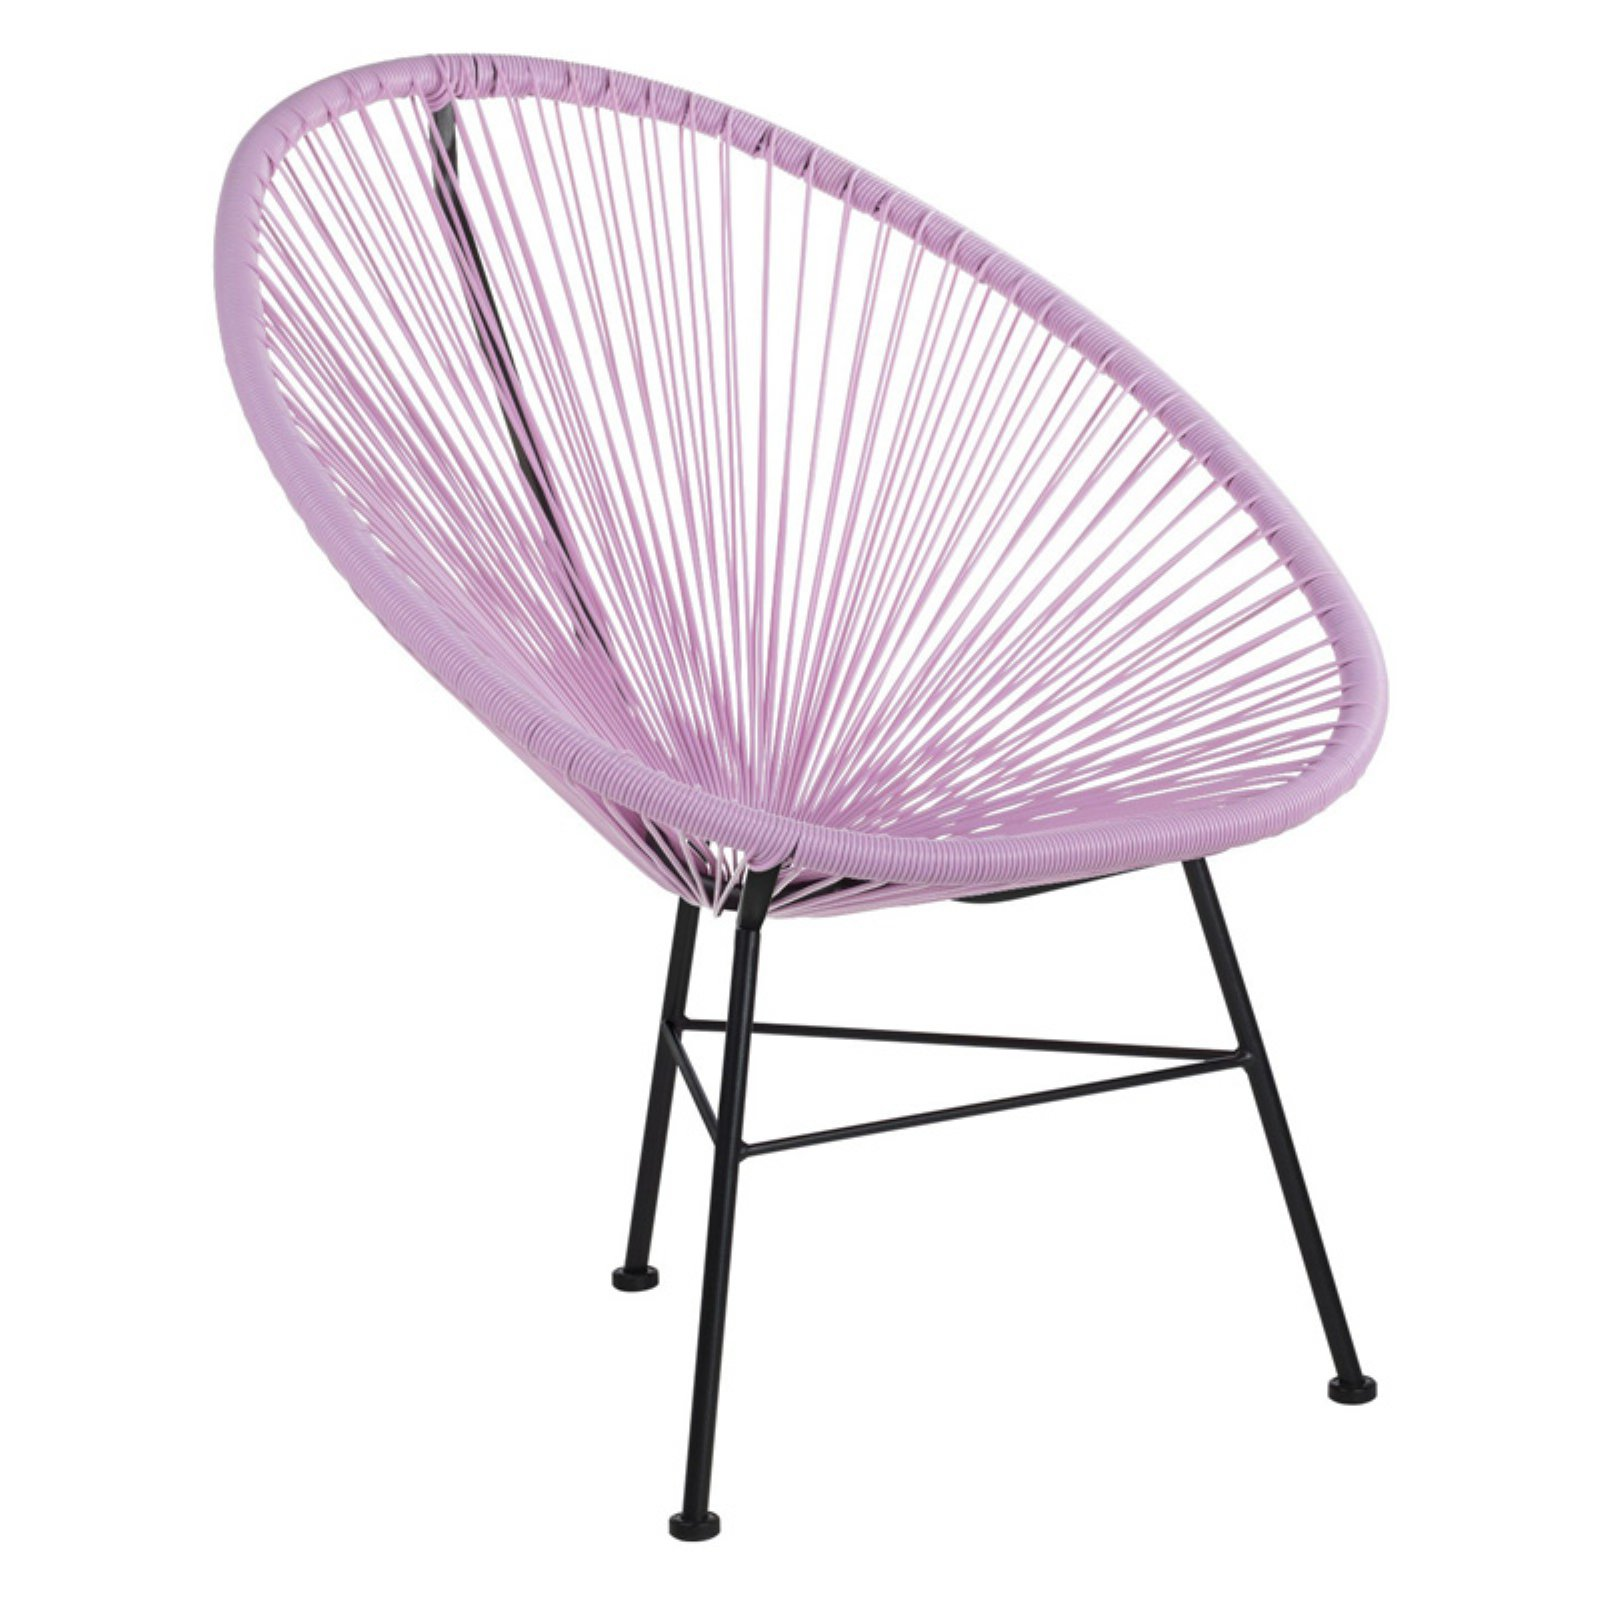 C2A Acapulco Outdoor Lounge Chair